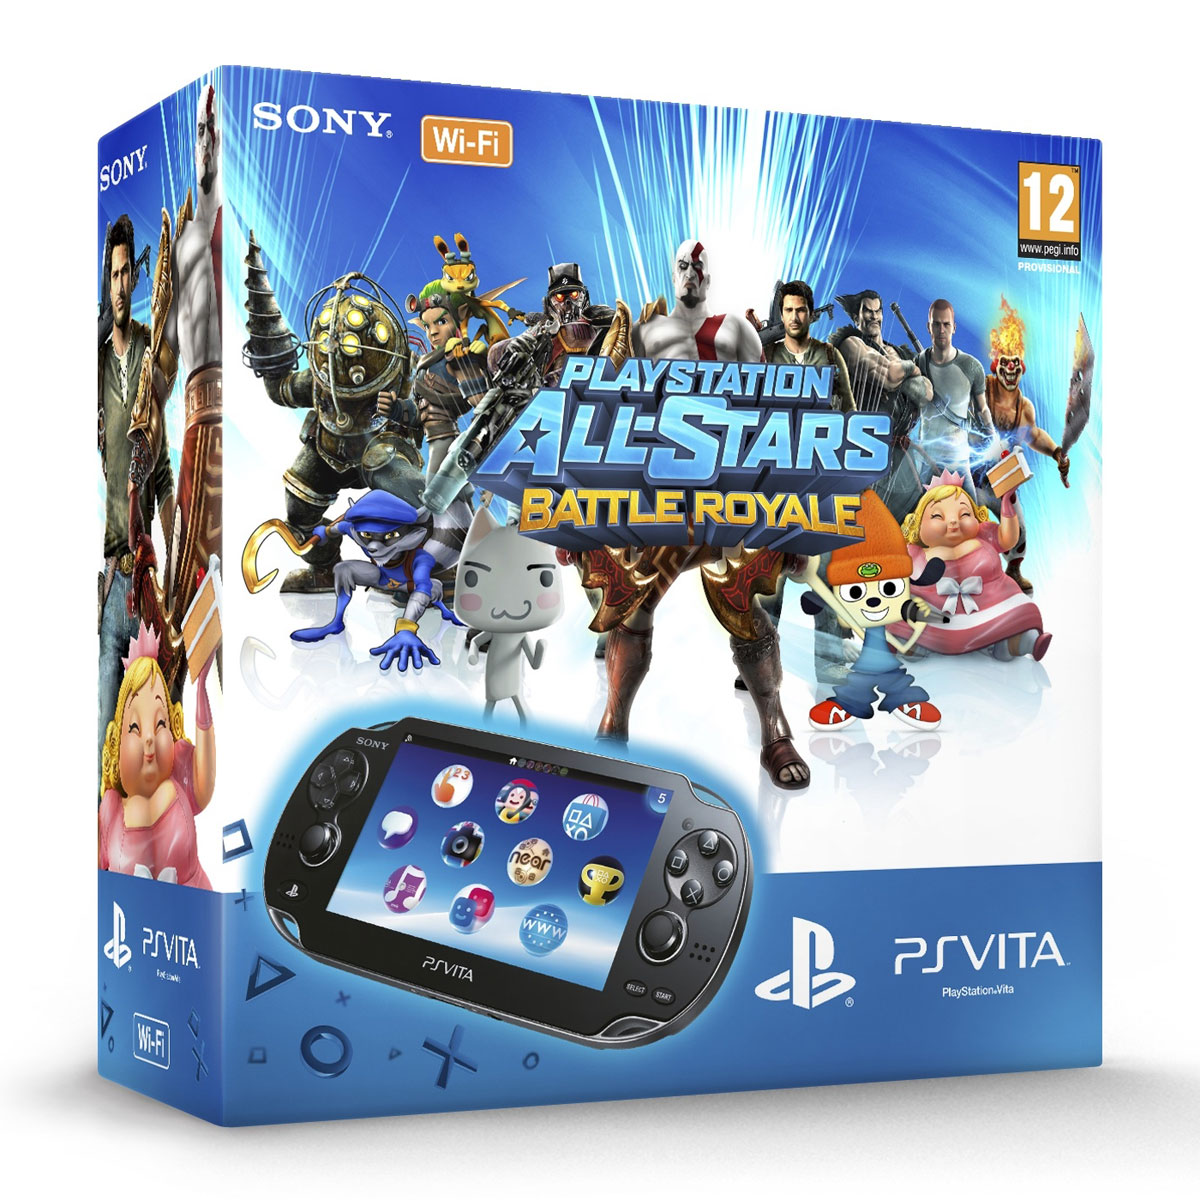 sony ps vita wifi noire playstation all stars battle royale carte m moire 4 go. Black Bedroom Furniture Sets. Home Design Ideas